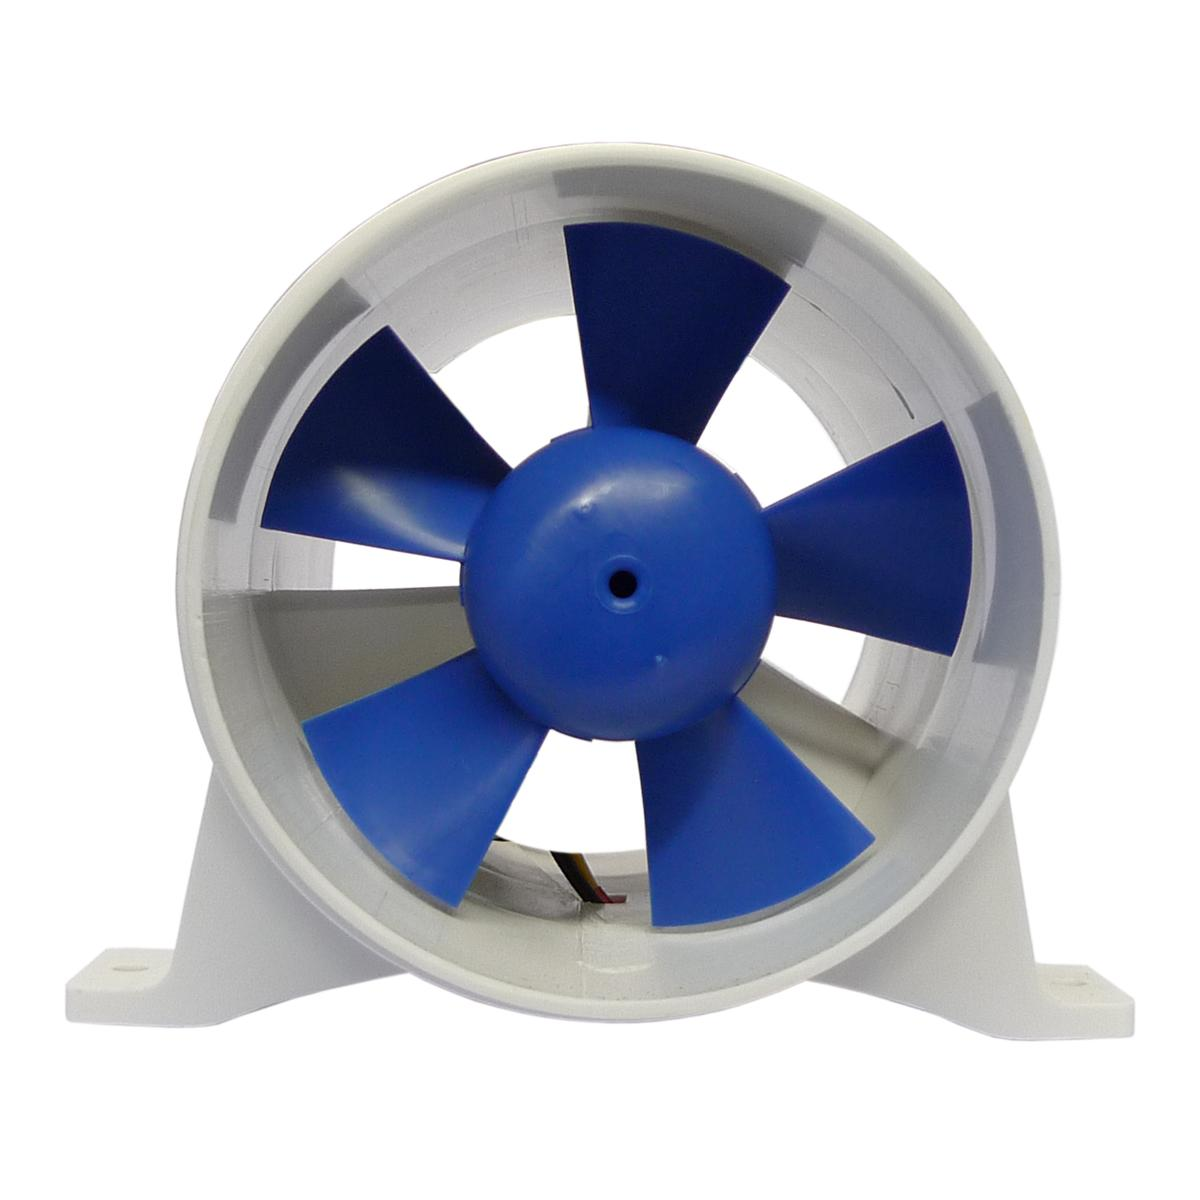 12 Volt Duct Fan : Volt inline blower pictures to pin on pinterest daddy